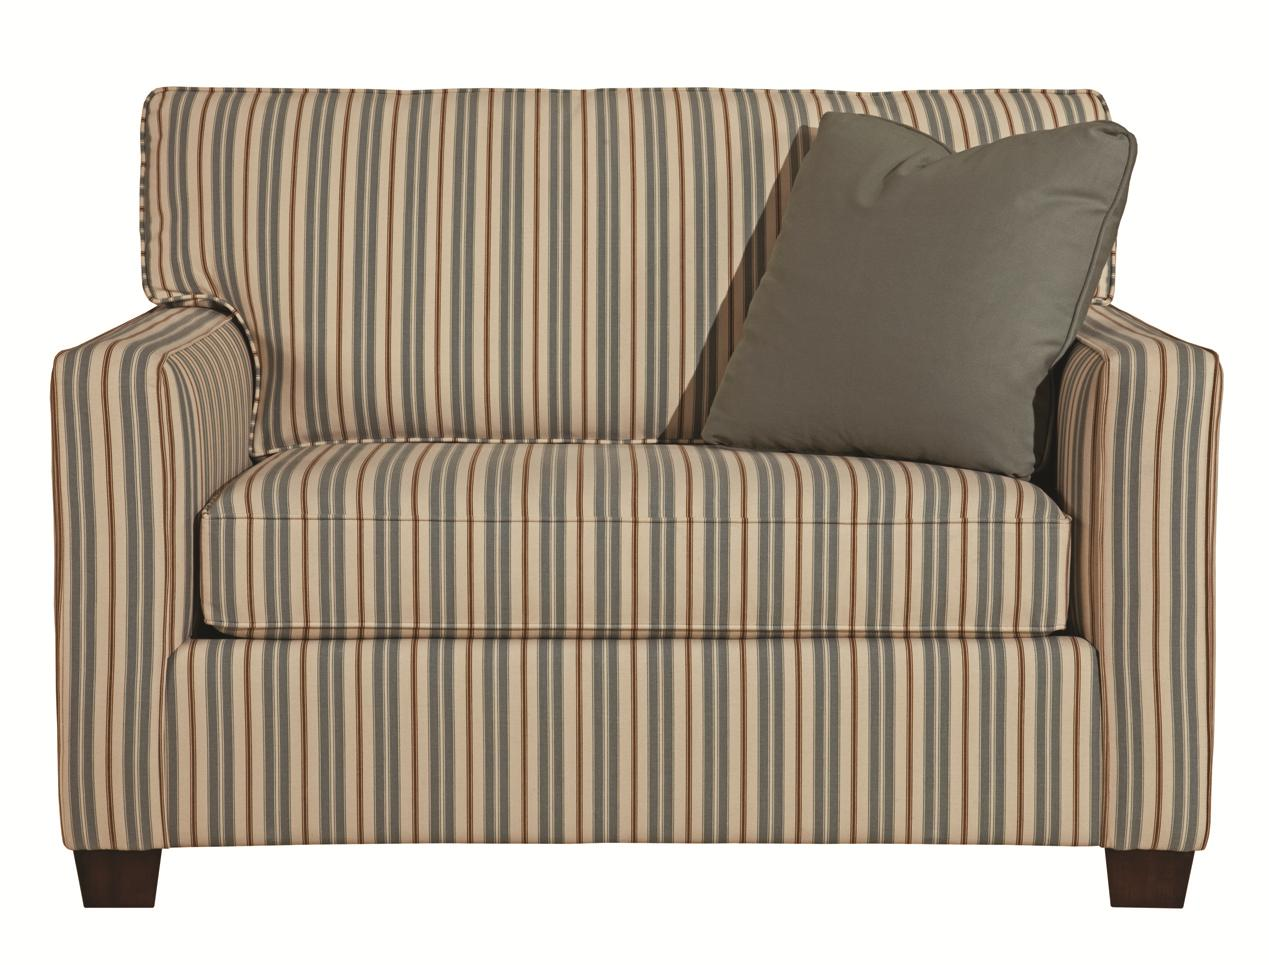 Brooke Sleeper Chair by Kincaid Furniture at Johnny Janosik